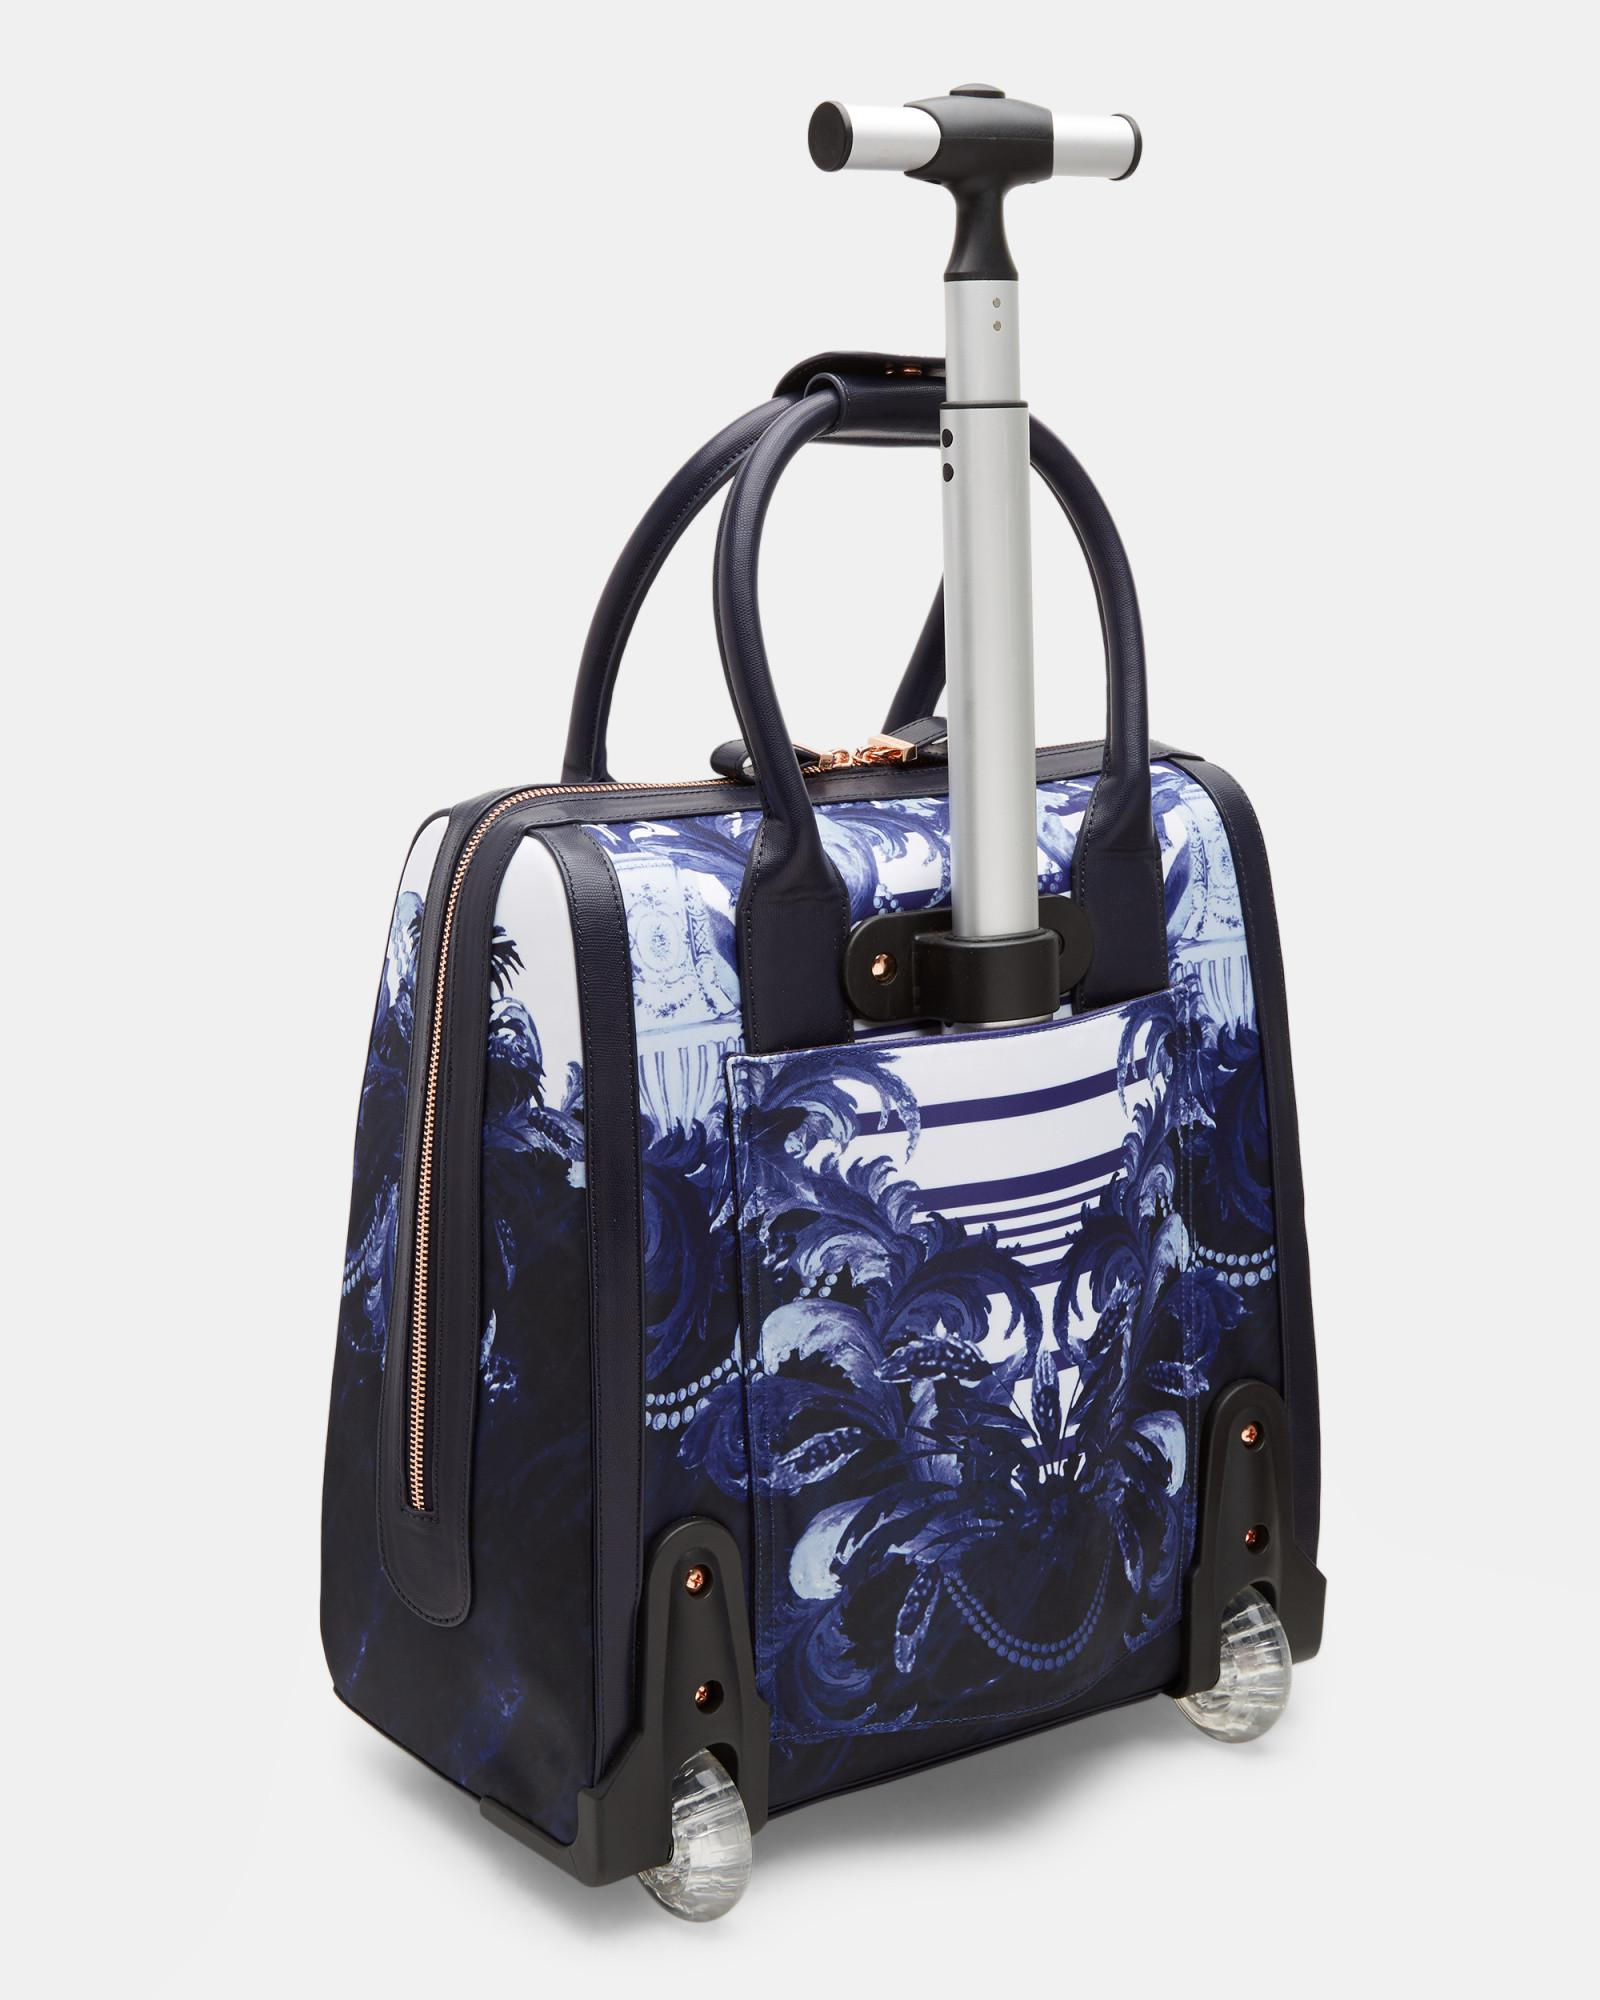 8f1357b6757f Ted Baker Persian Blue Print Travel Bag in Blue - Lyst